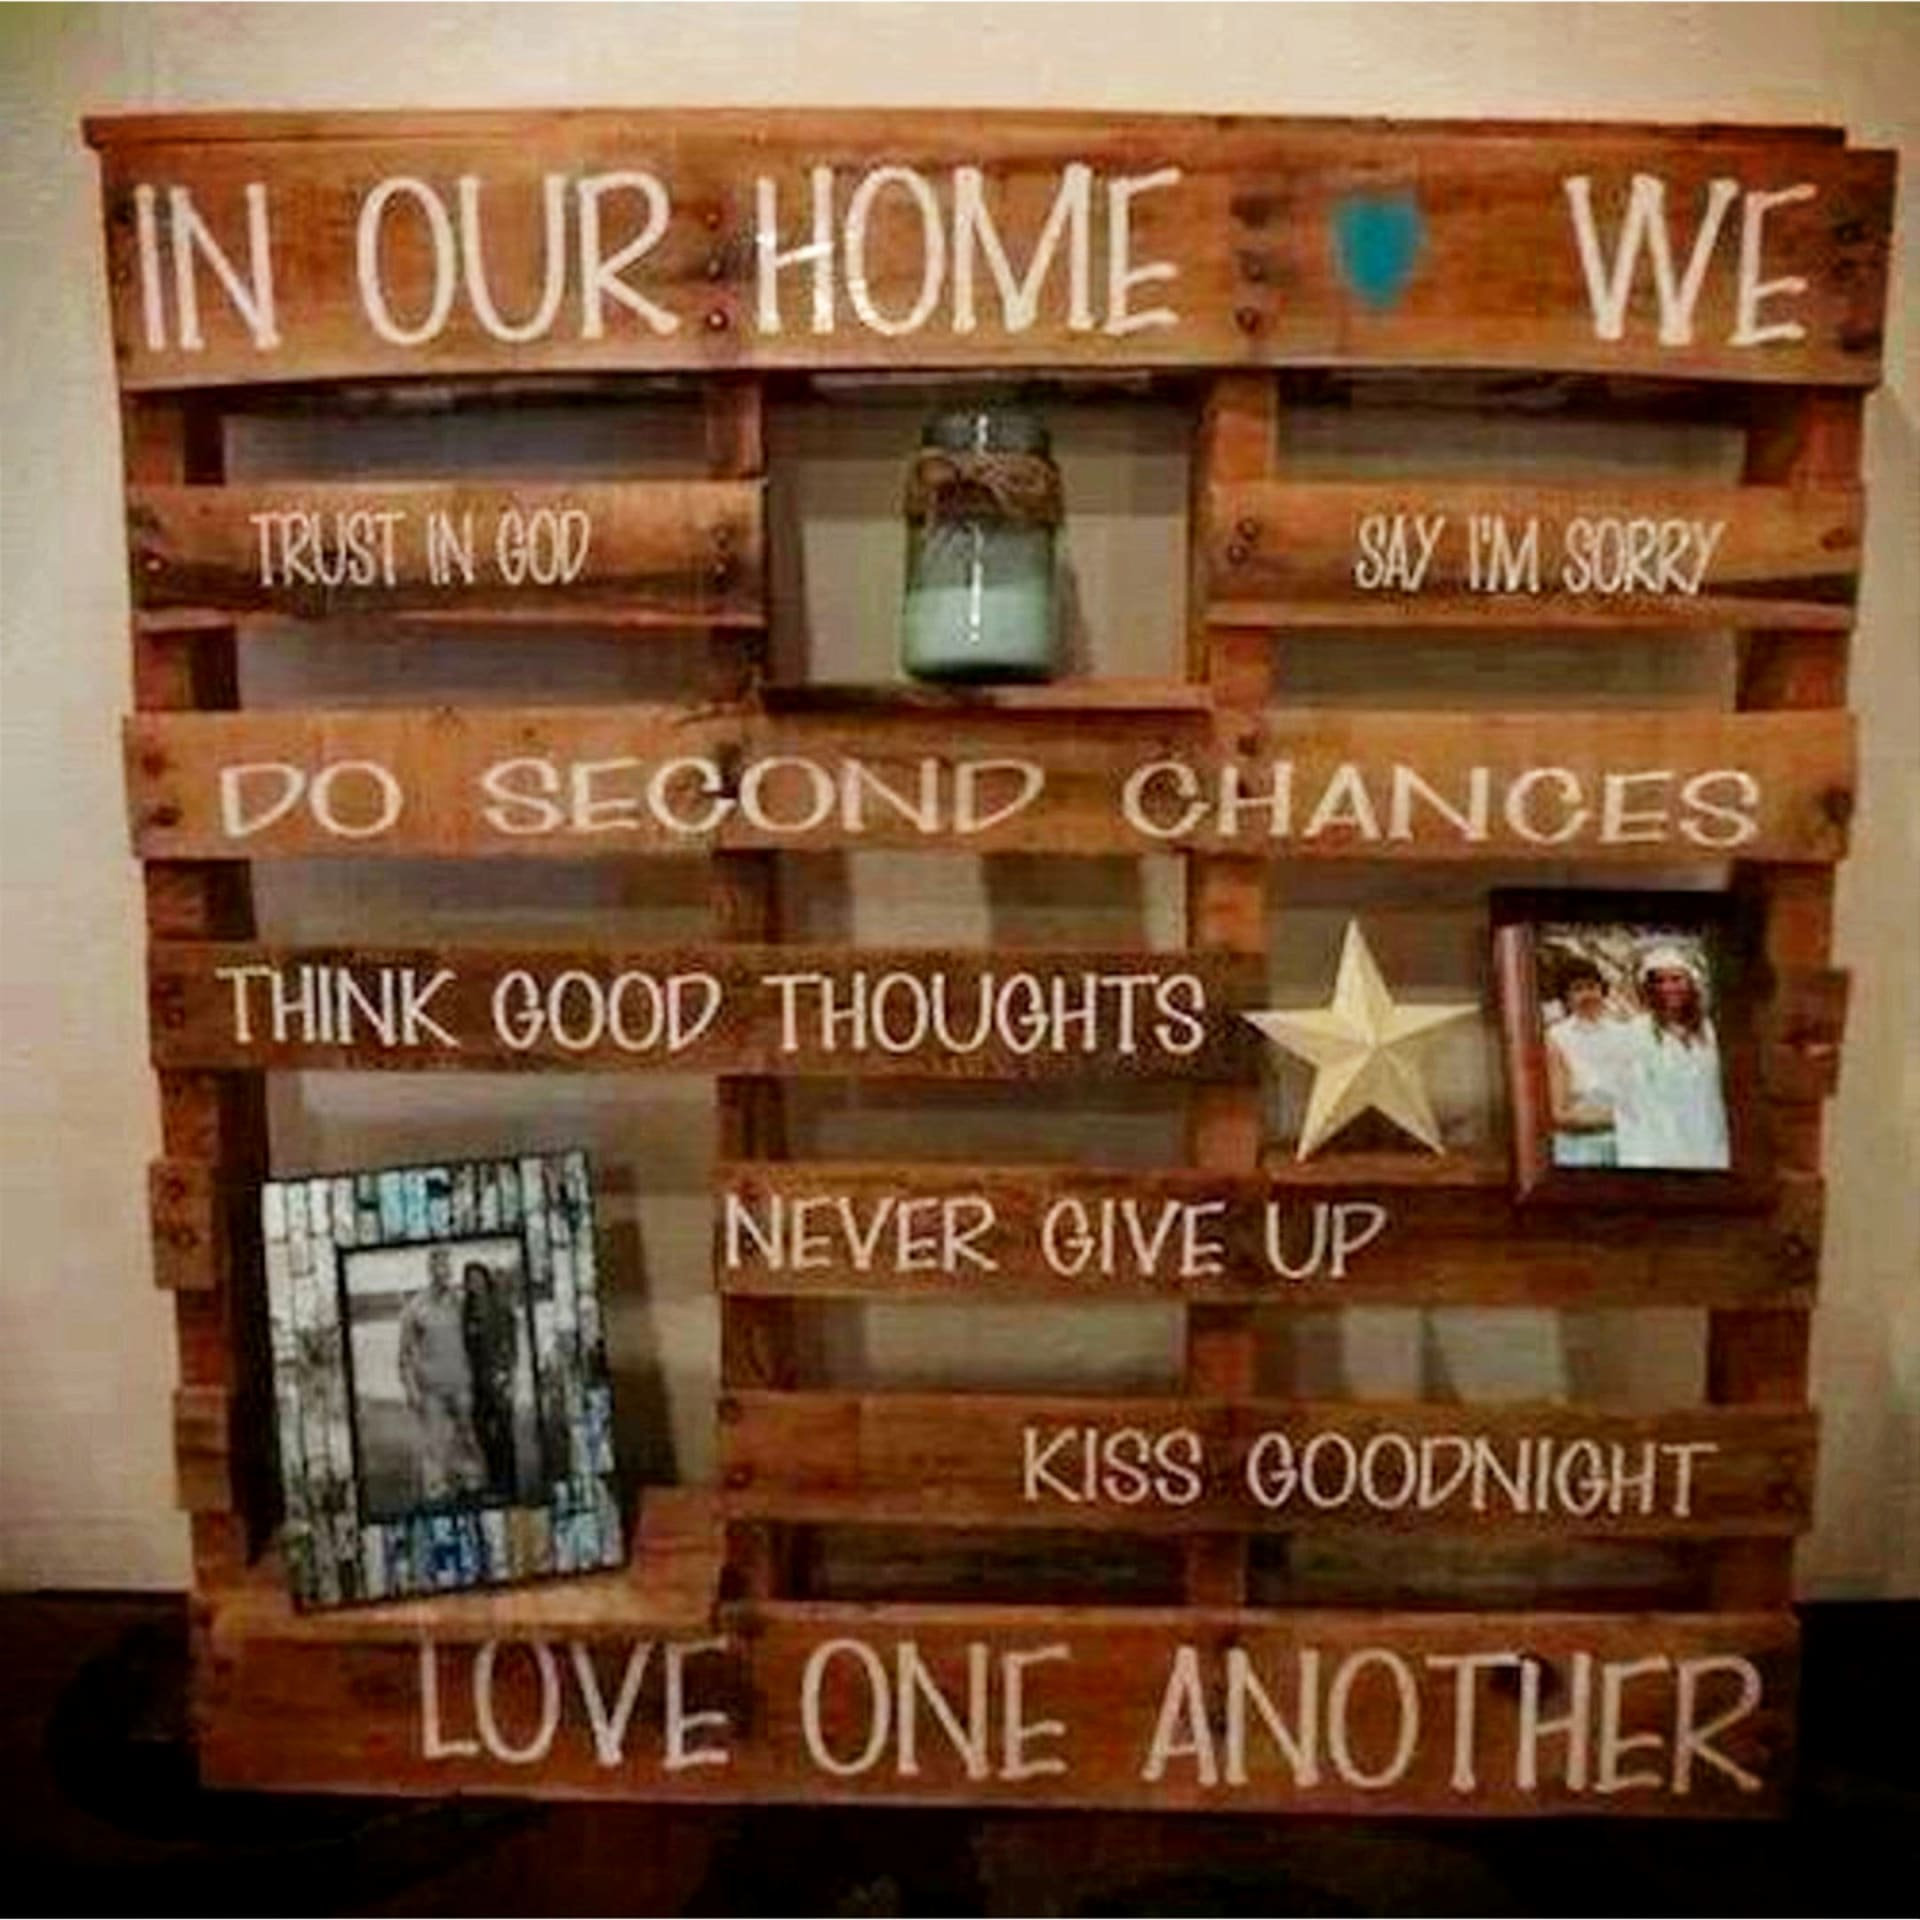 Pallet Projects - easy pallet projects ideas to make or sell - DIY pallet wall sign 'in our home' saying - makes a great handmade gift too